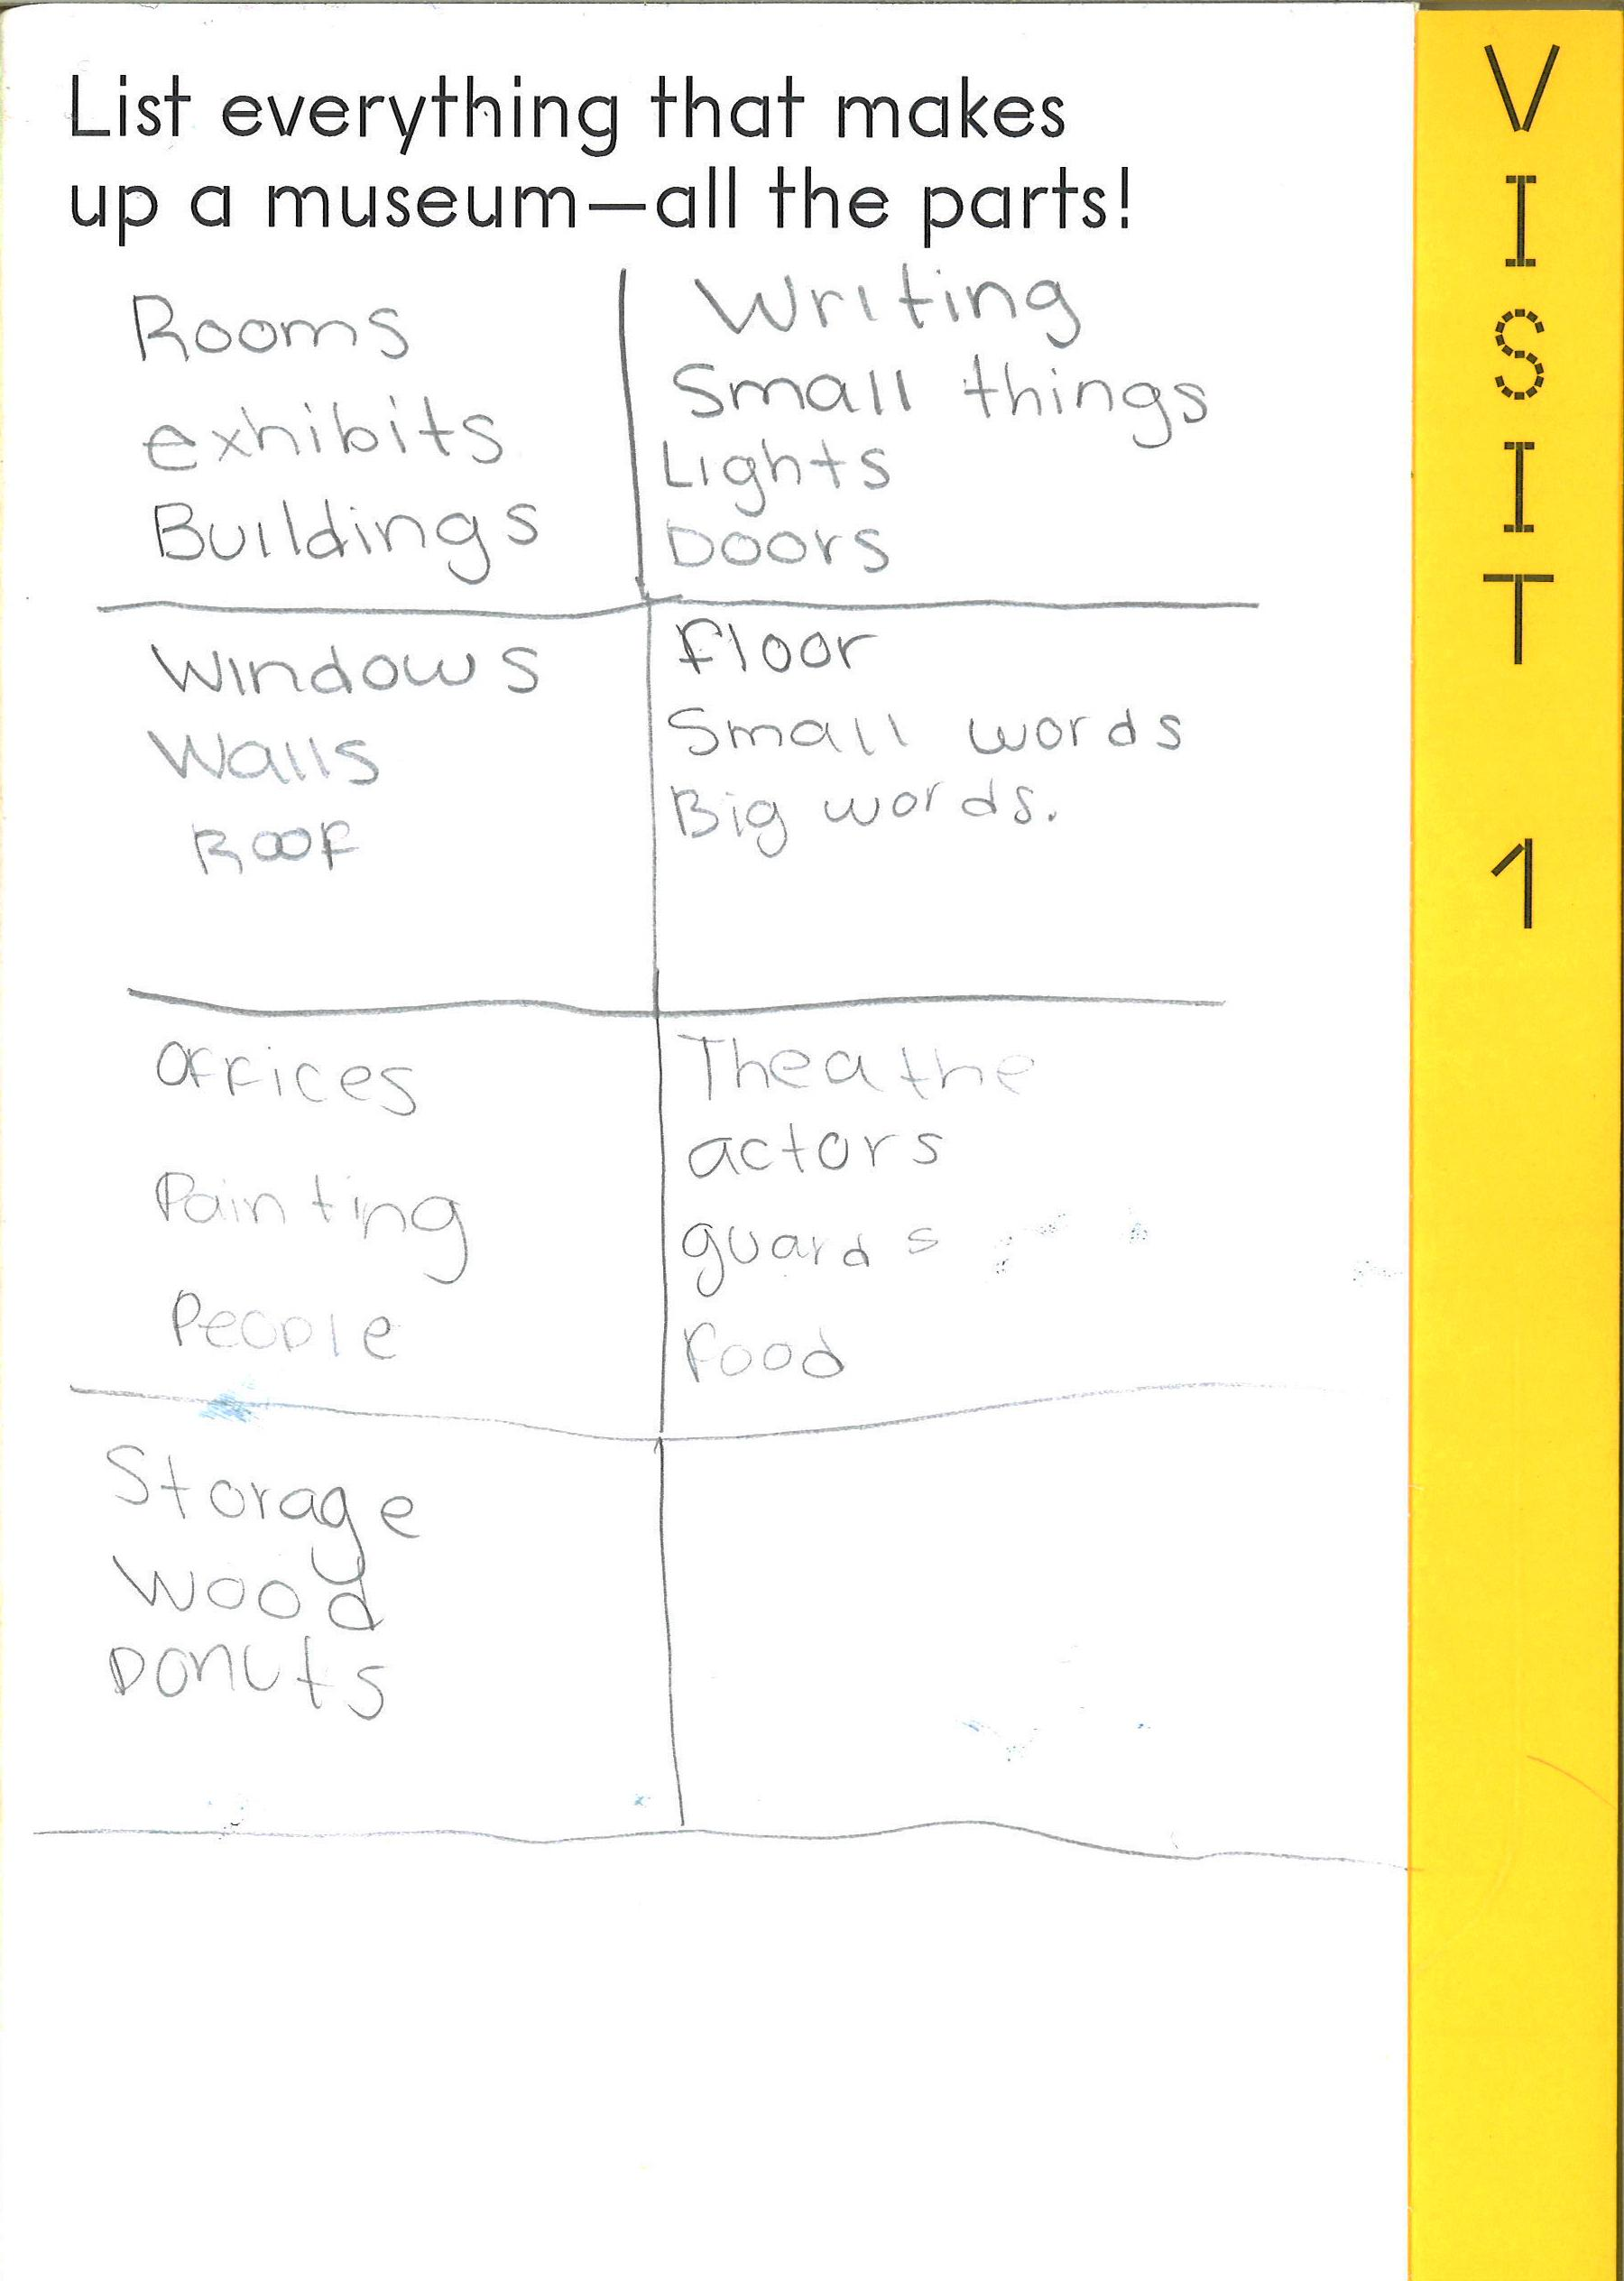 """A page of a child's activity book displays handwritten answers to the prompt """"List everything that makes up a museum-all the parts!""""."""